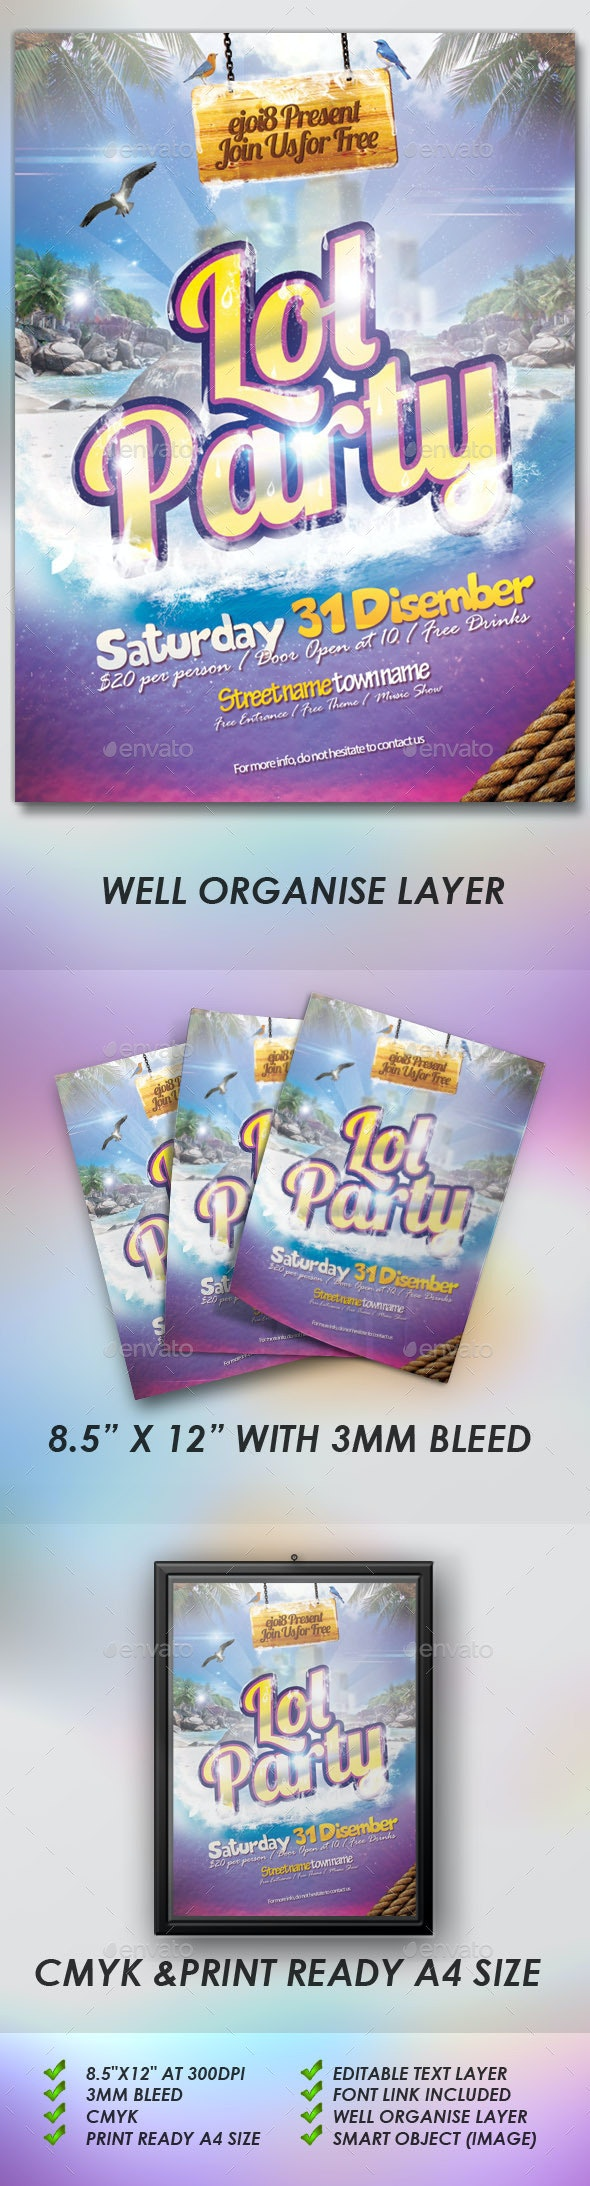 Lol Party Flyers - Events Flyers